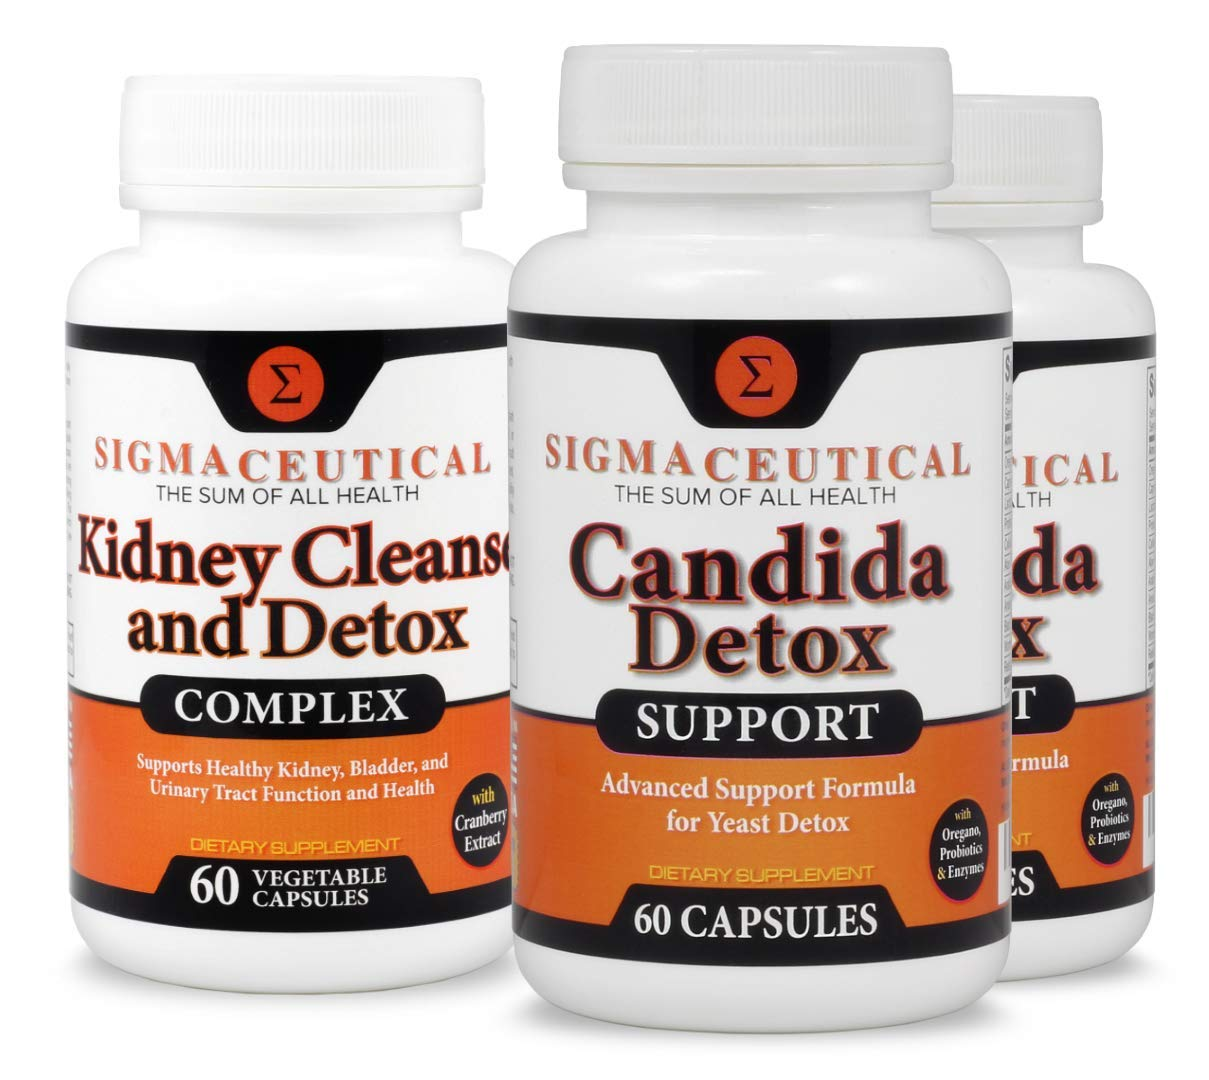 Bacterial Vaginosis Treatment - Candida Detox & Kidney Cleanses - 2 Month Bundle by Sigmaceutical